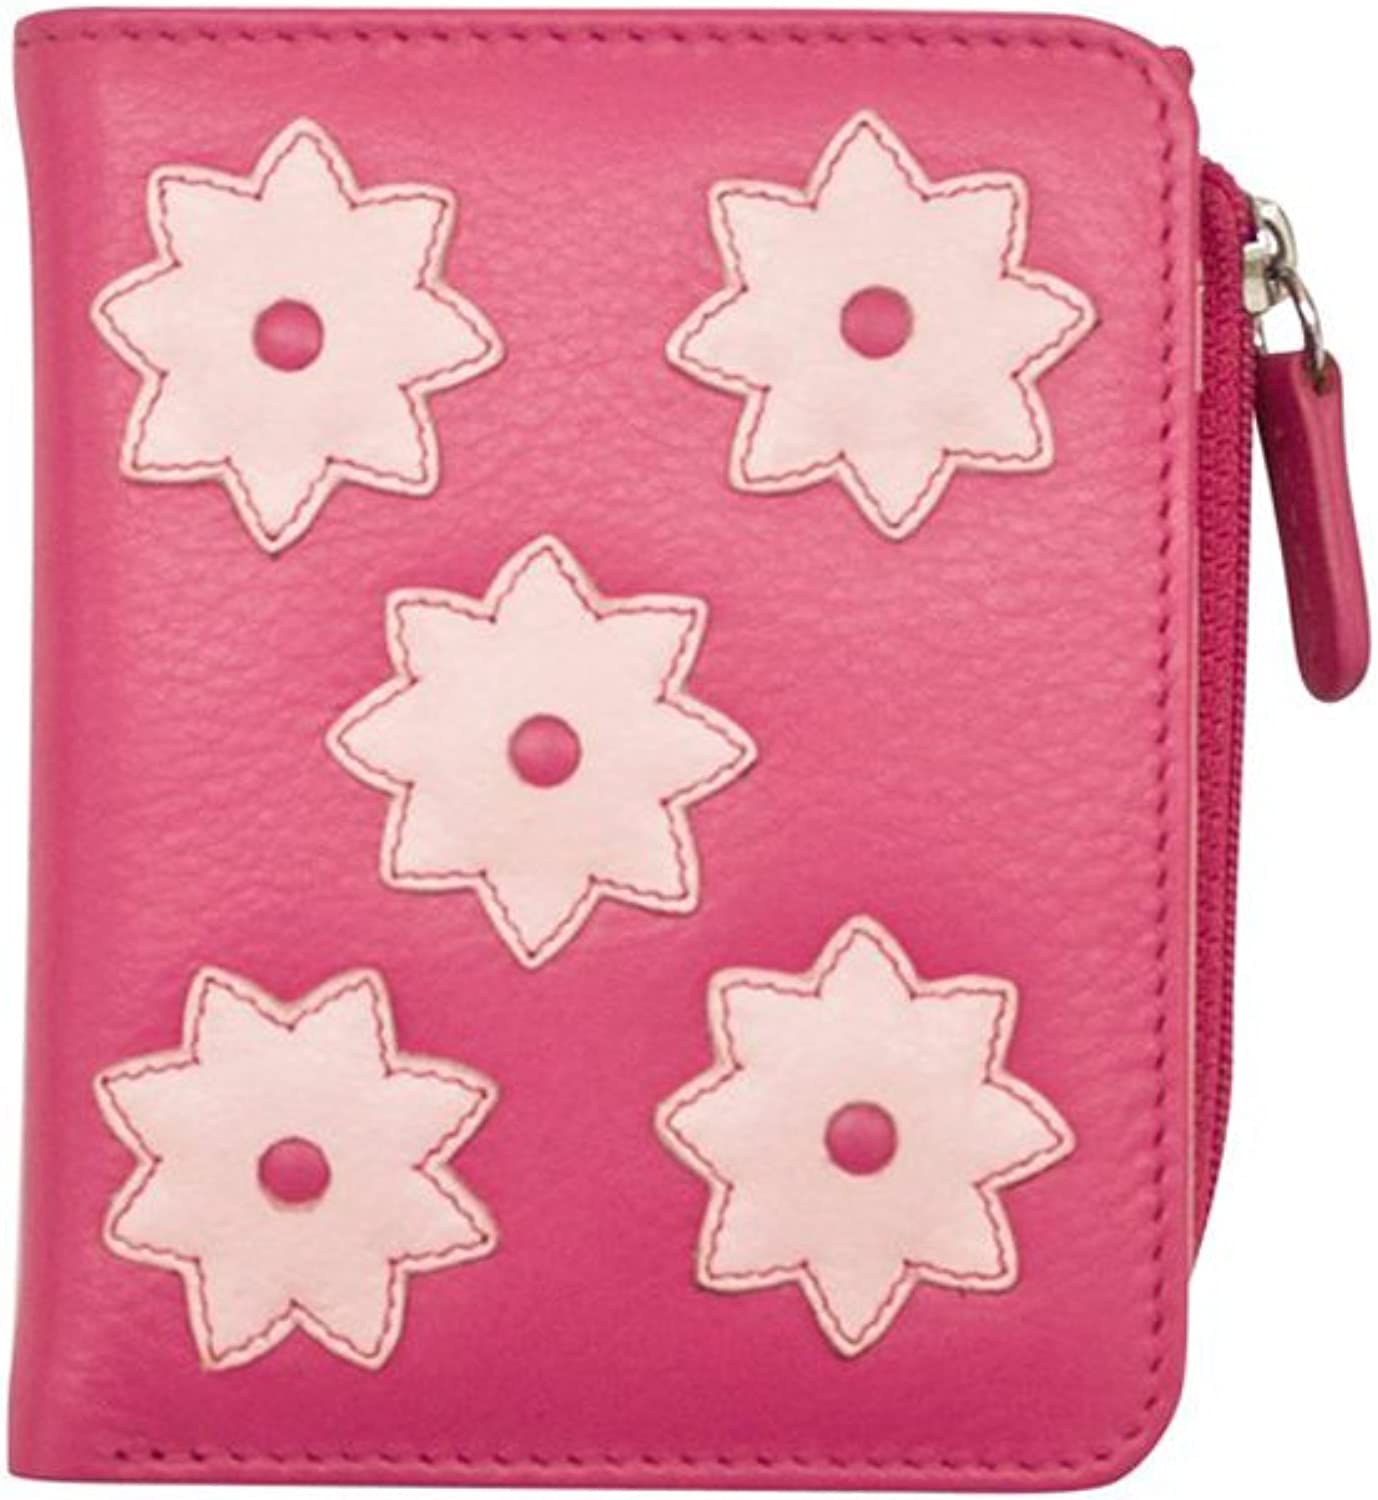 Ili 7803 Leather Flower Power Small Wallet with RFID Blocking Lining